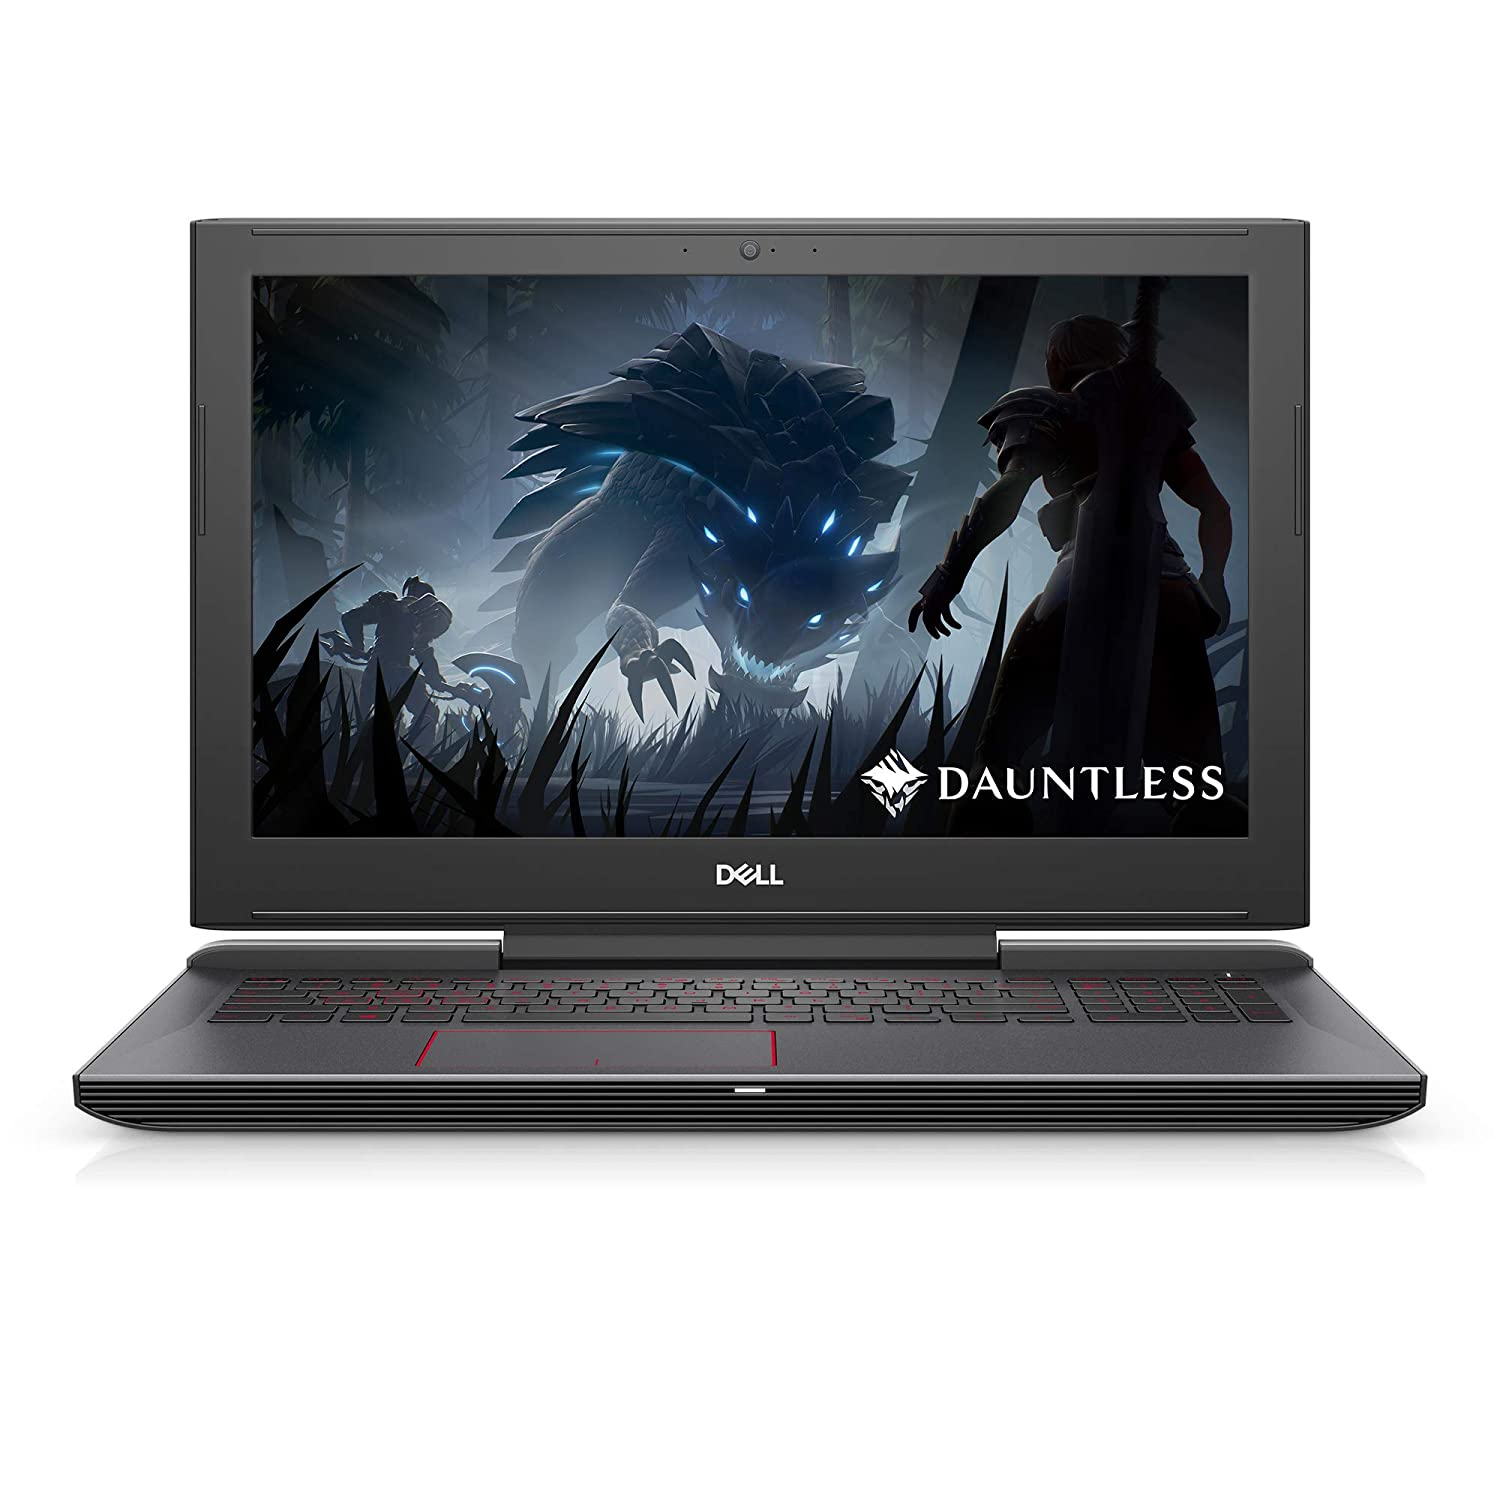 当季大流行 Dell G5 SSD, 15 Premium Gaming Quad-Core, and 1080, Business Laptop (Intel 8th Gen i7-8750H Quad-Core, 32GB RAM, 1TB HDD + 128GB SSD, 15.6